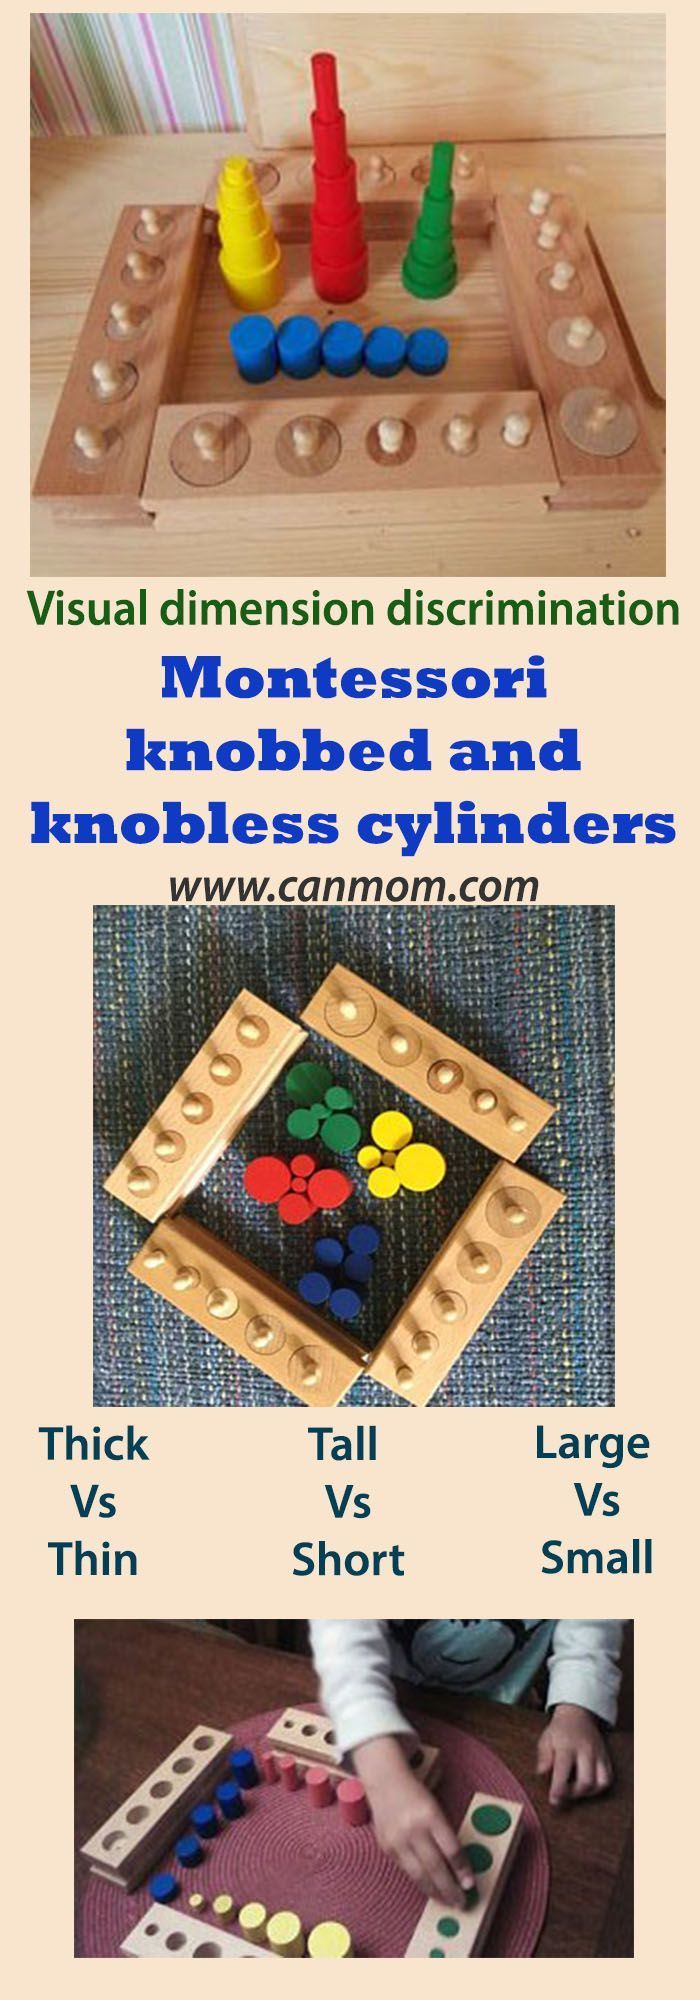 Wooden learning toy / Montessori Knobbed and knobless ...